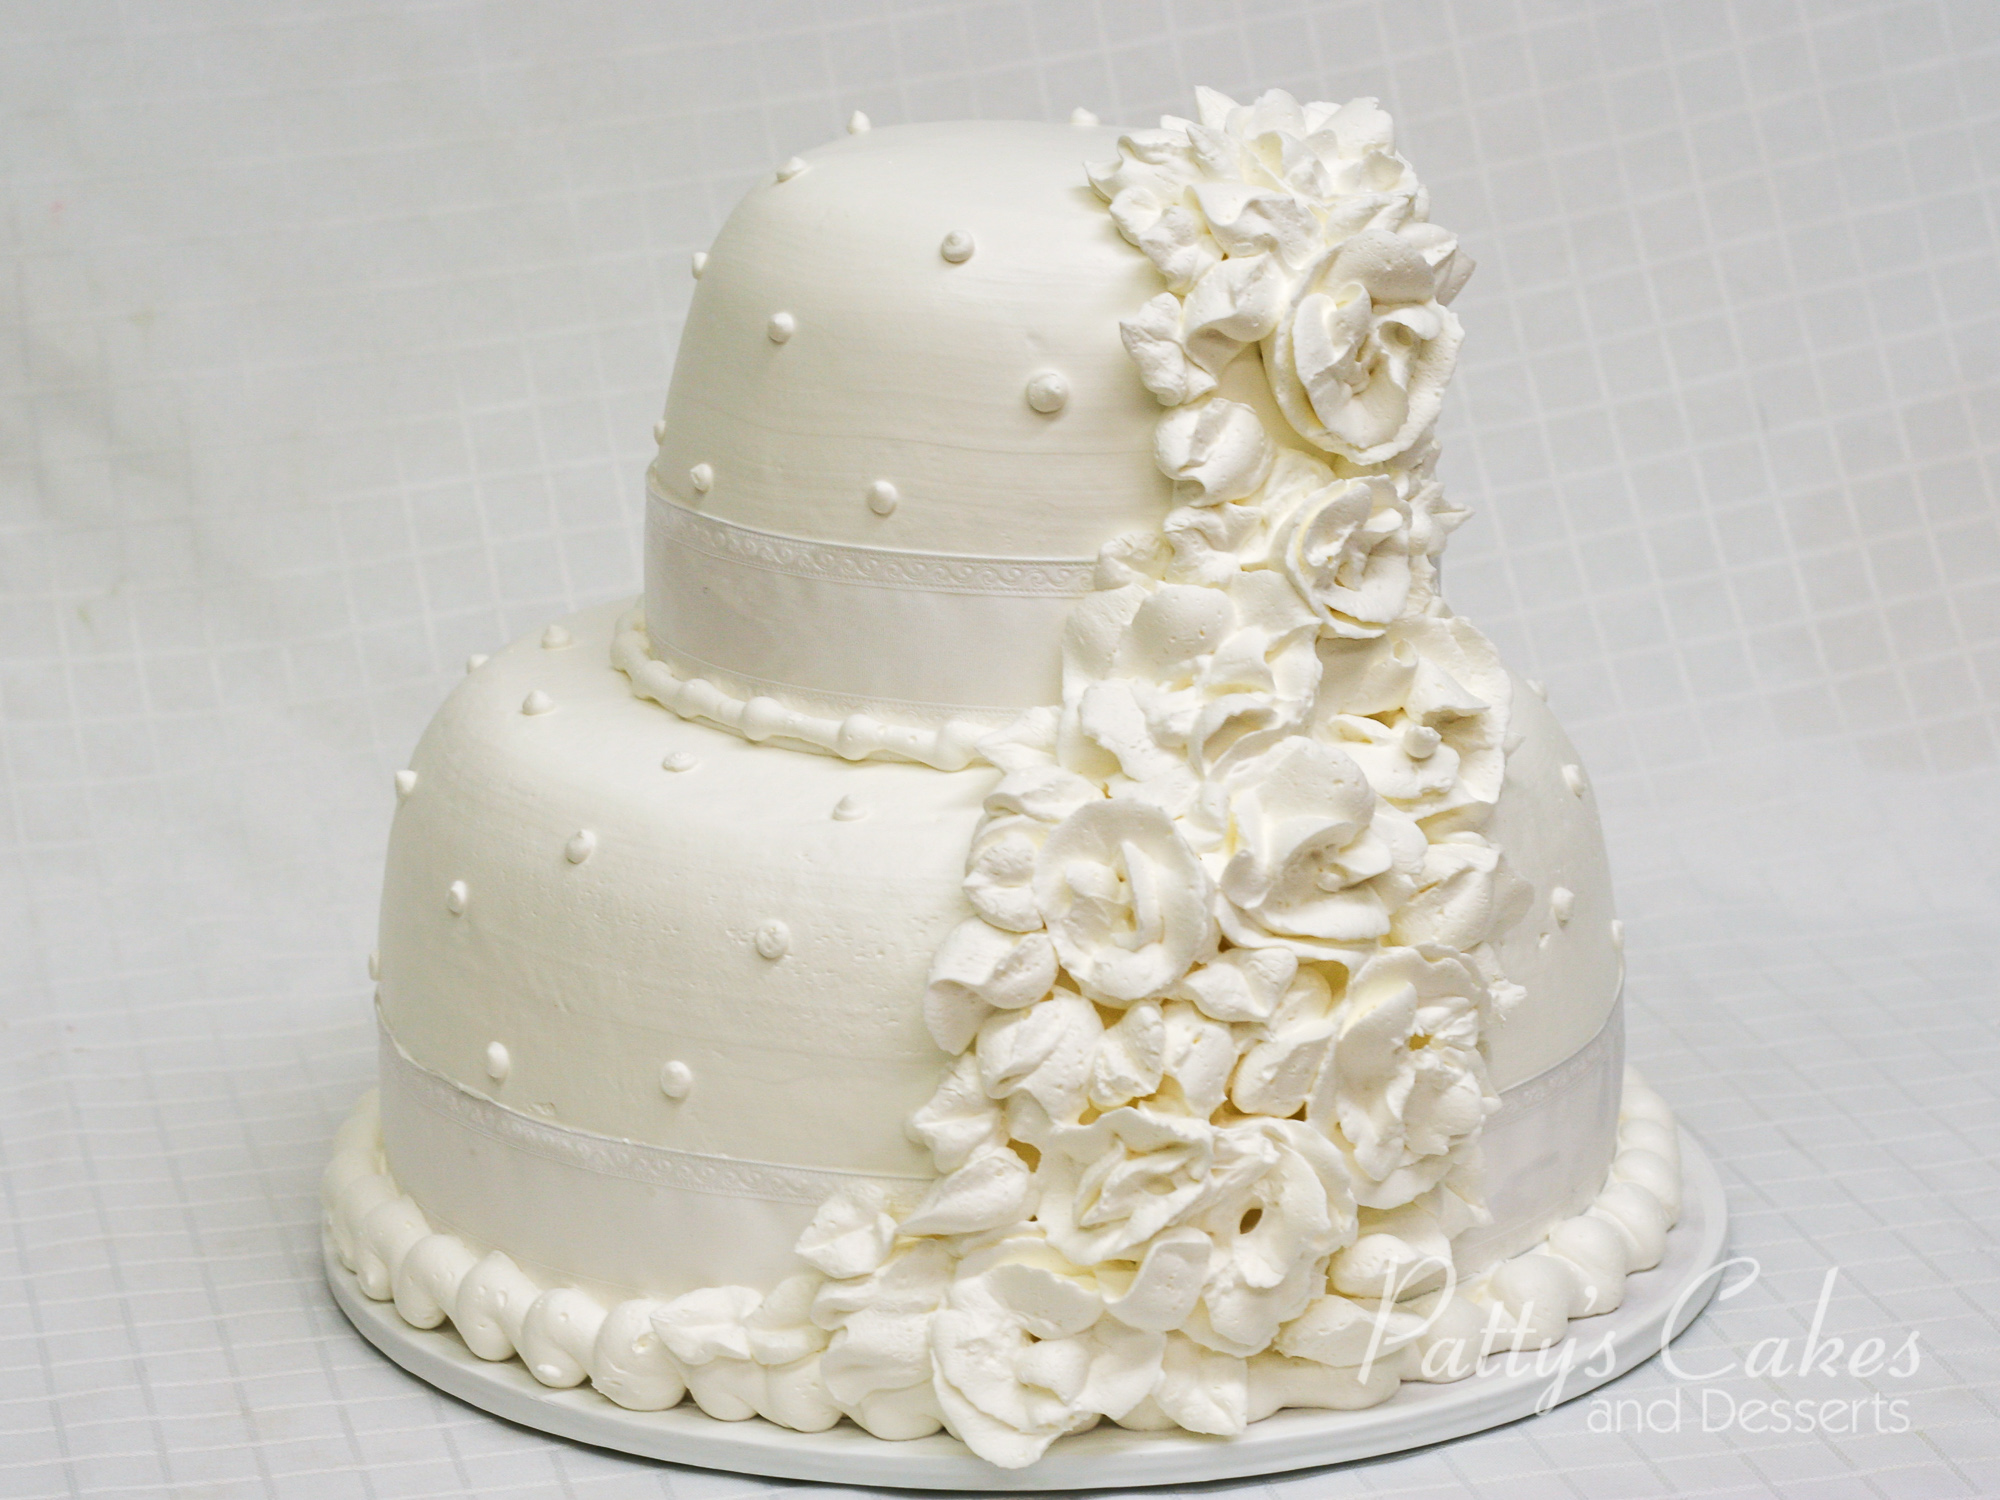 Photo of a white flowers anniversary cake - Patty\'s Cakes and Desserts